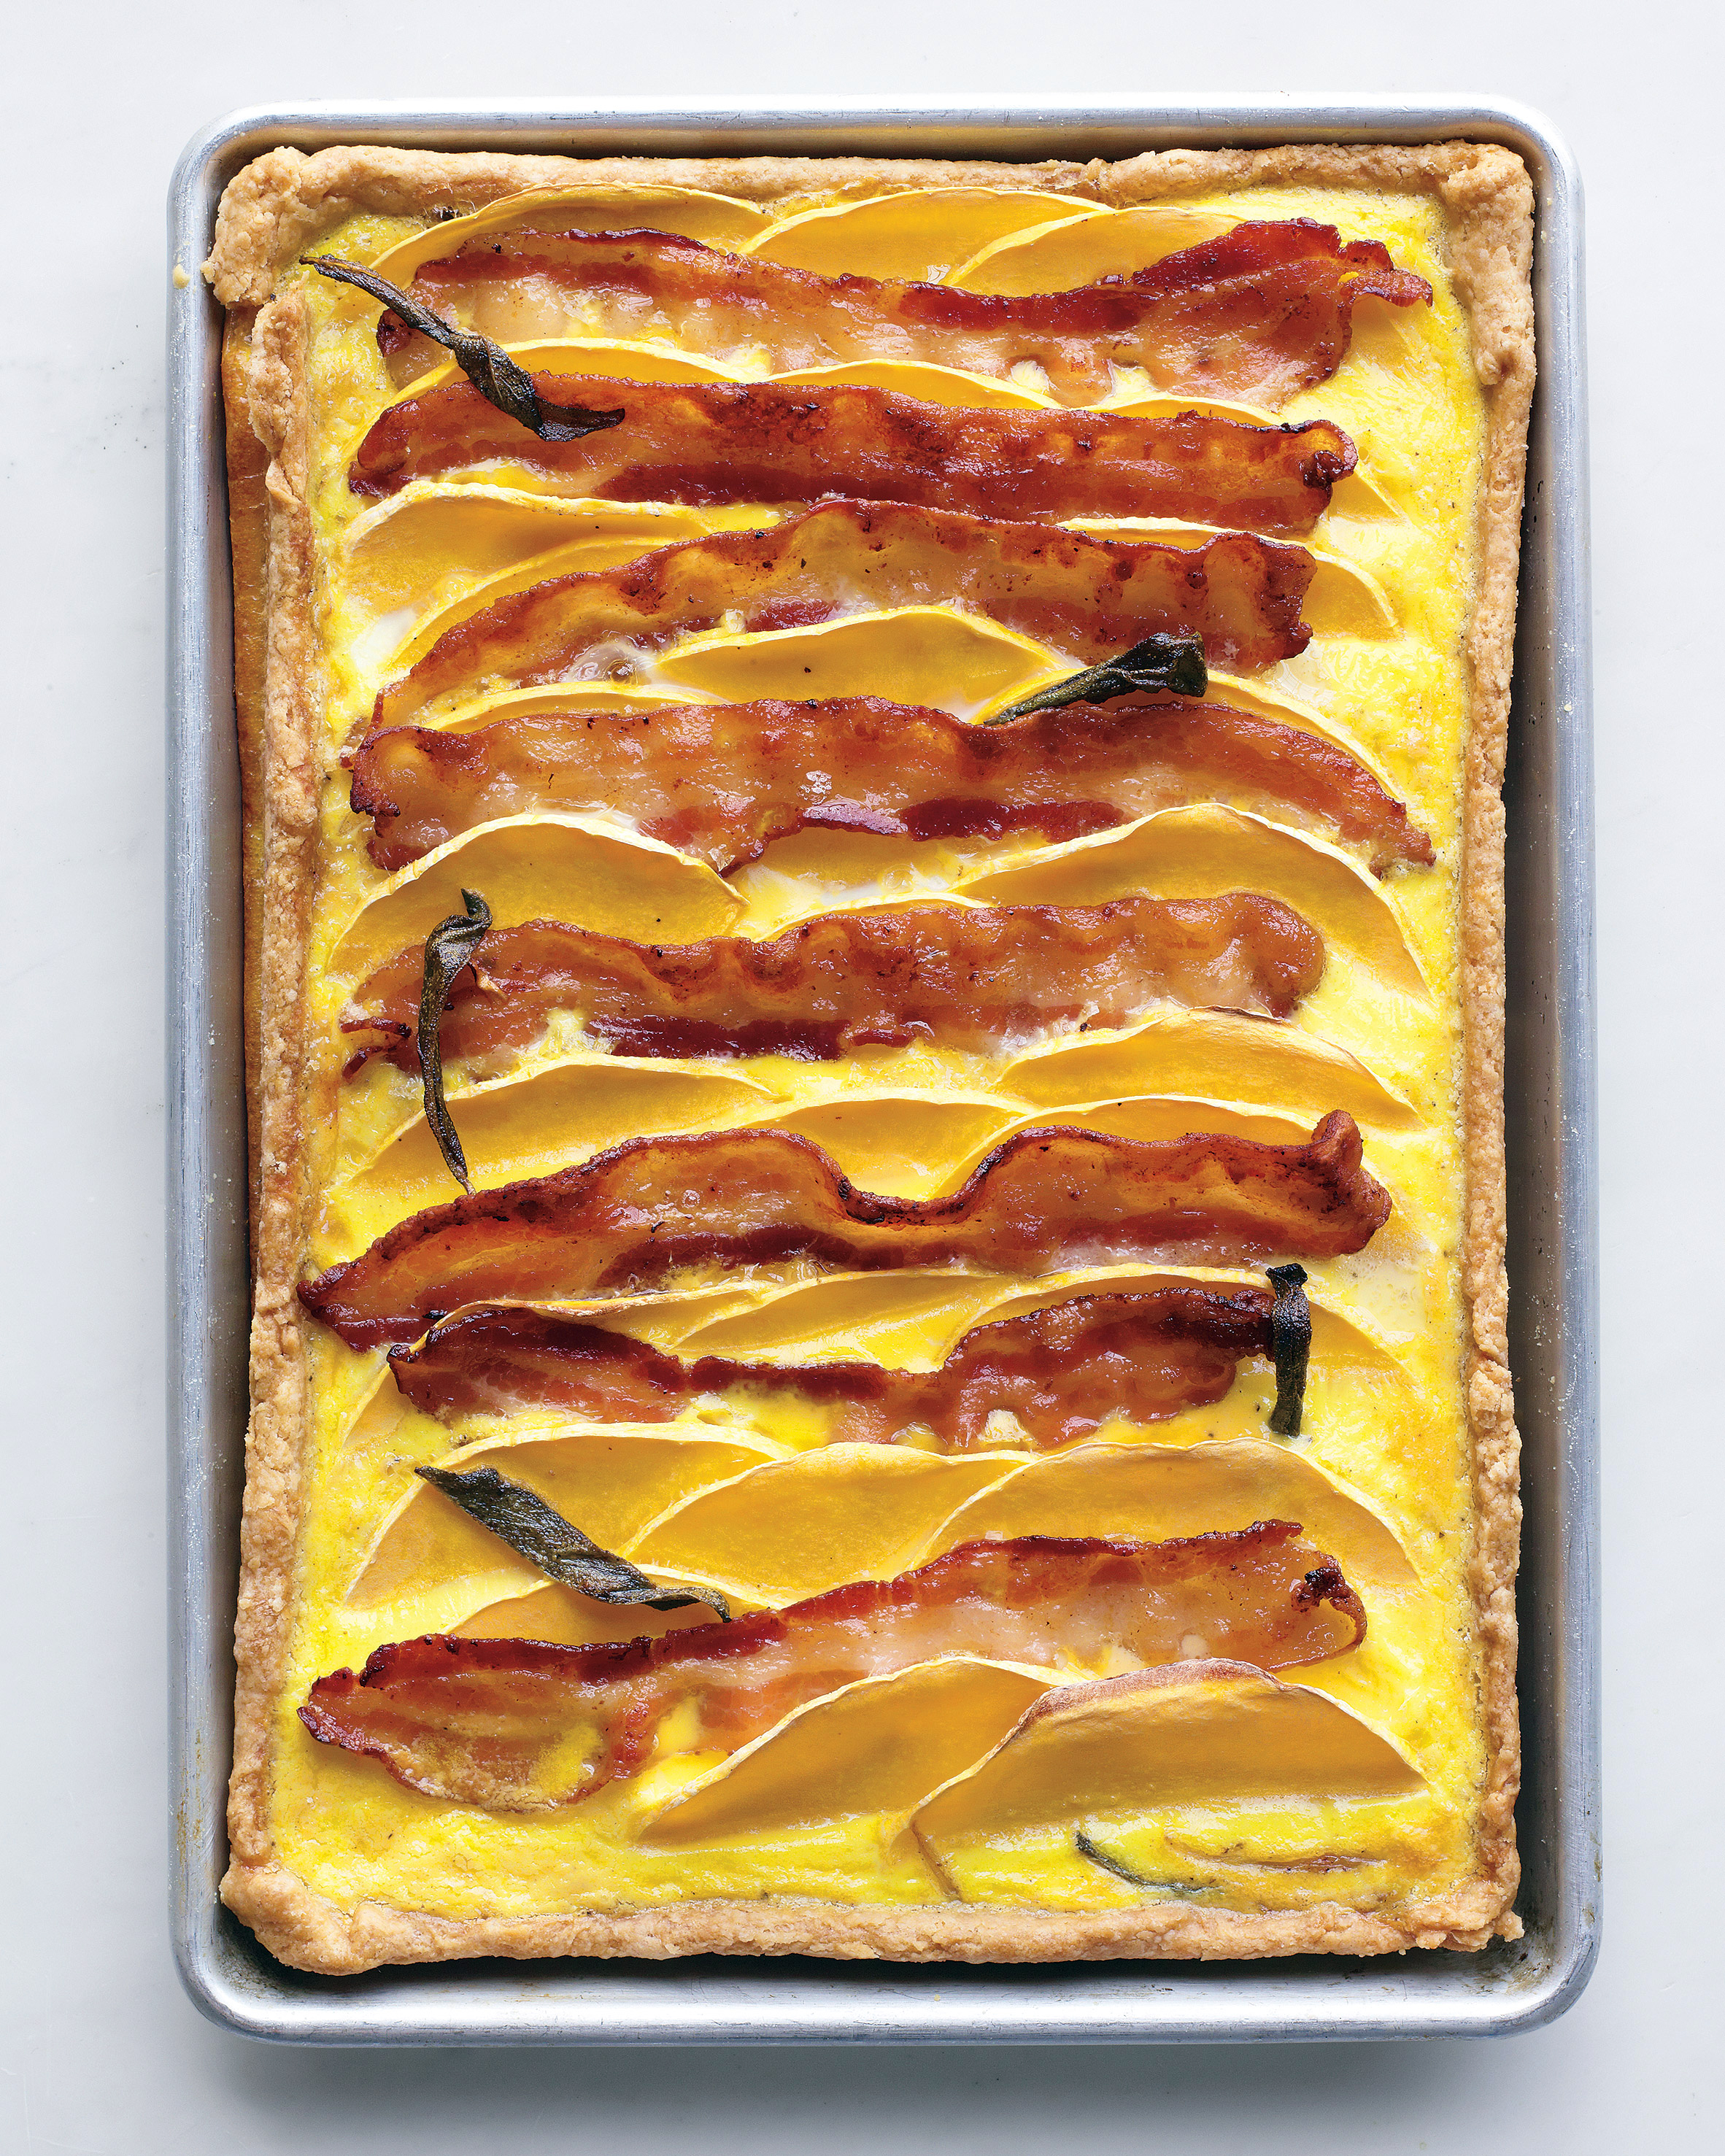 med100860_1110_pie_bacon_quiche.jpg